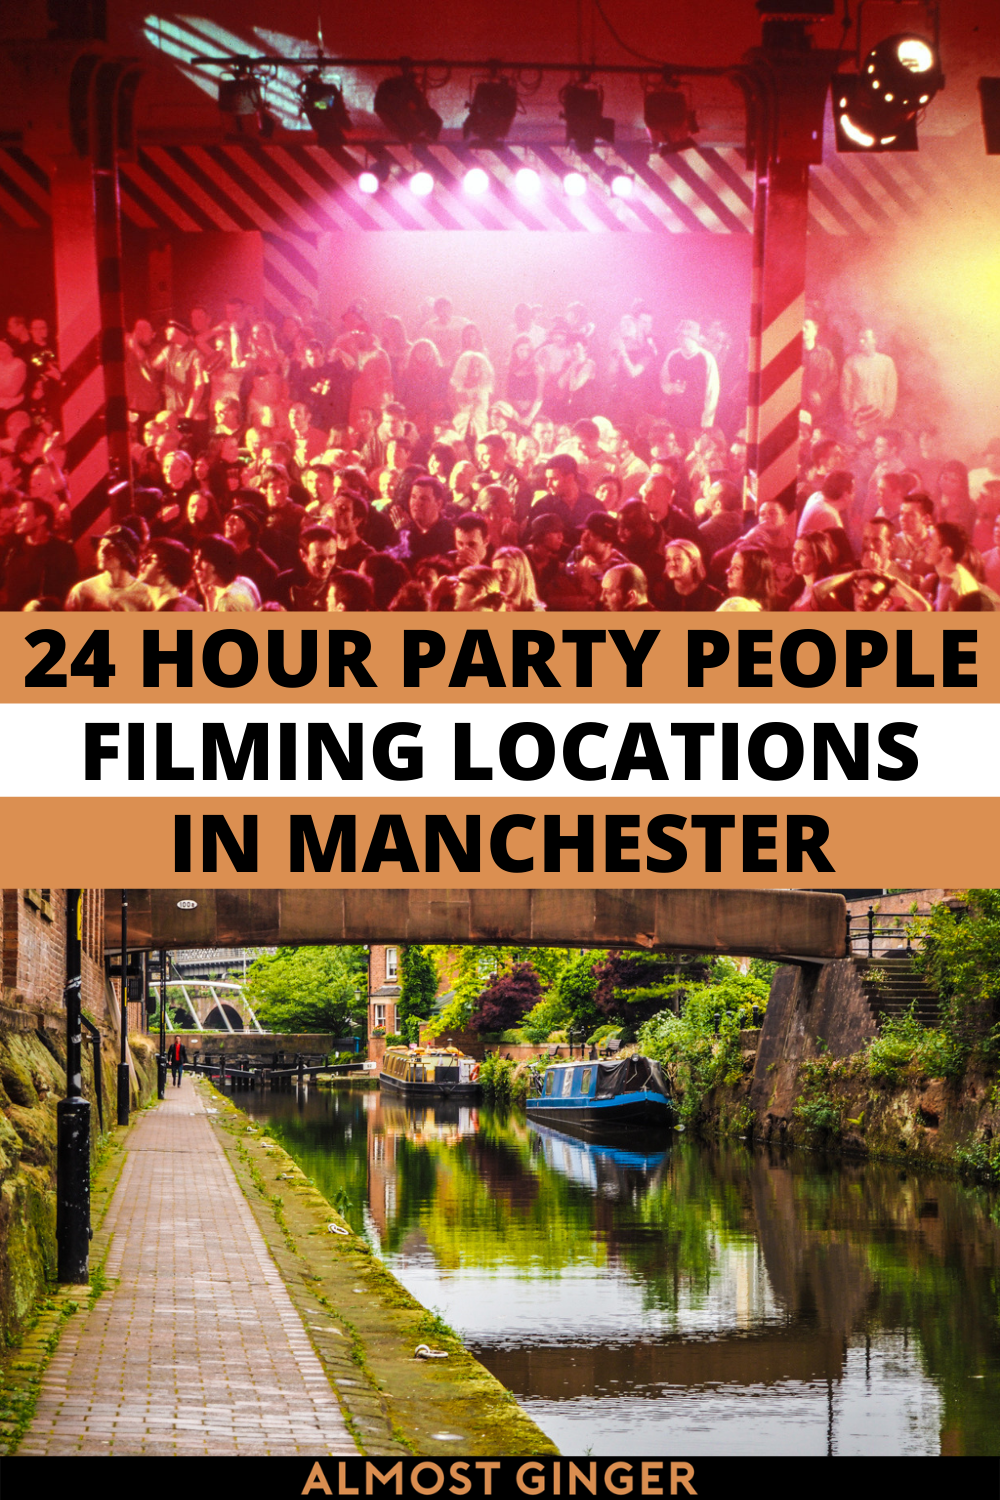 24 Hour Party People Filming Locations in Manchester, UK | almostginger.com